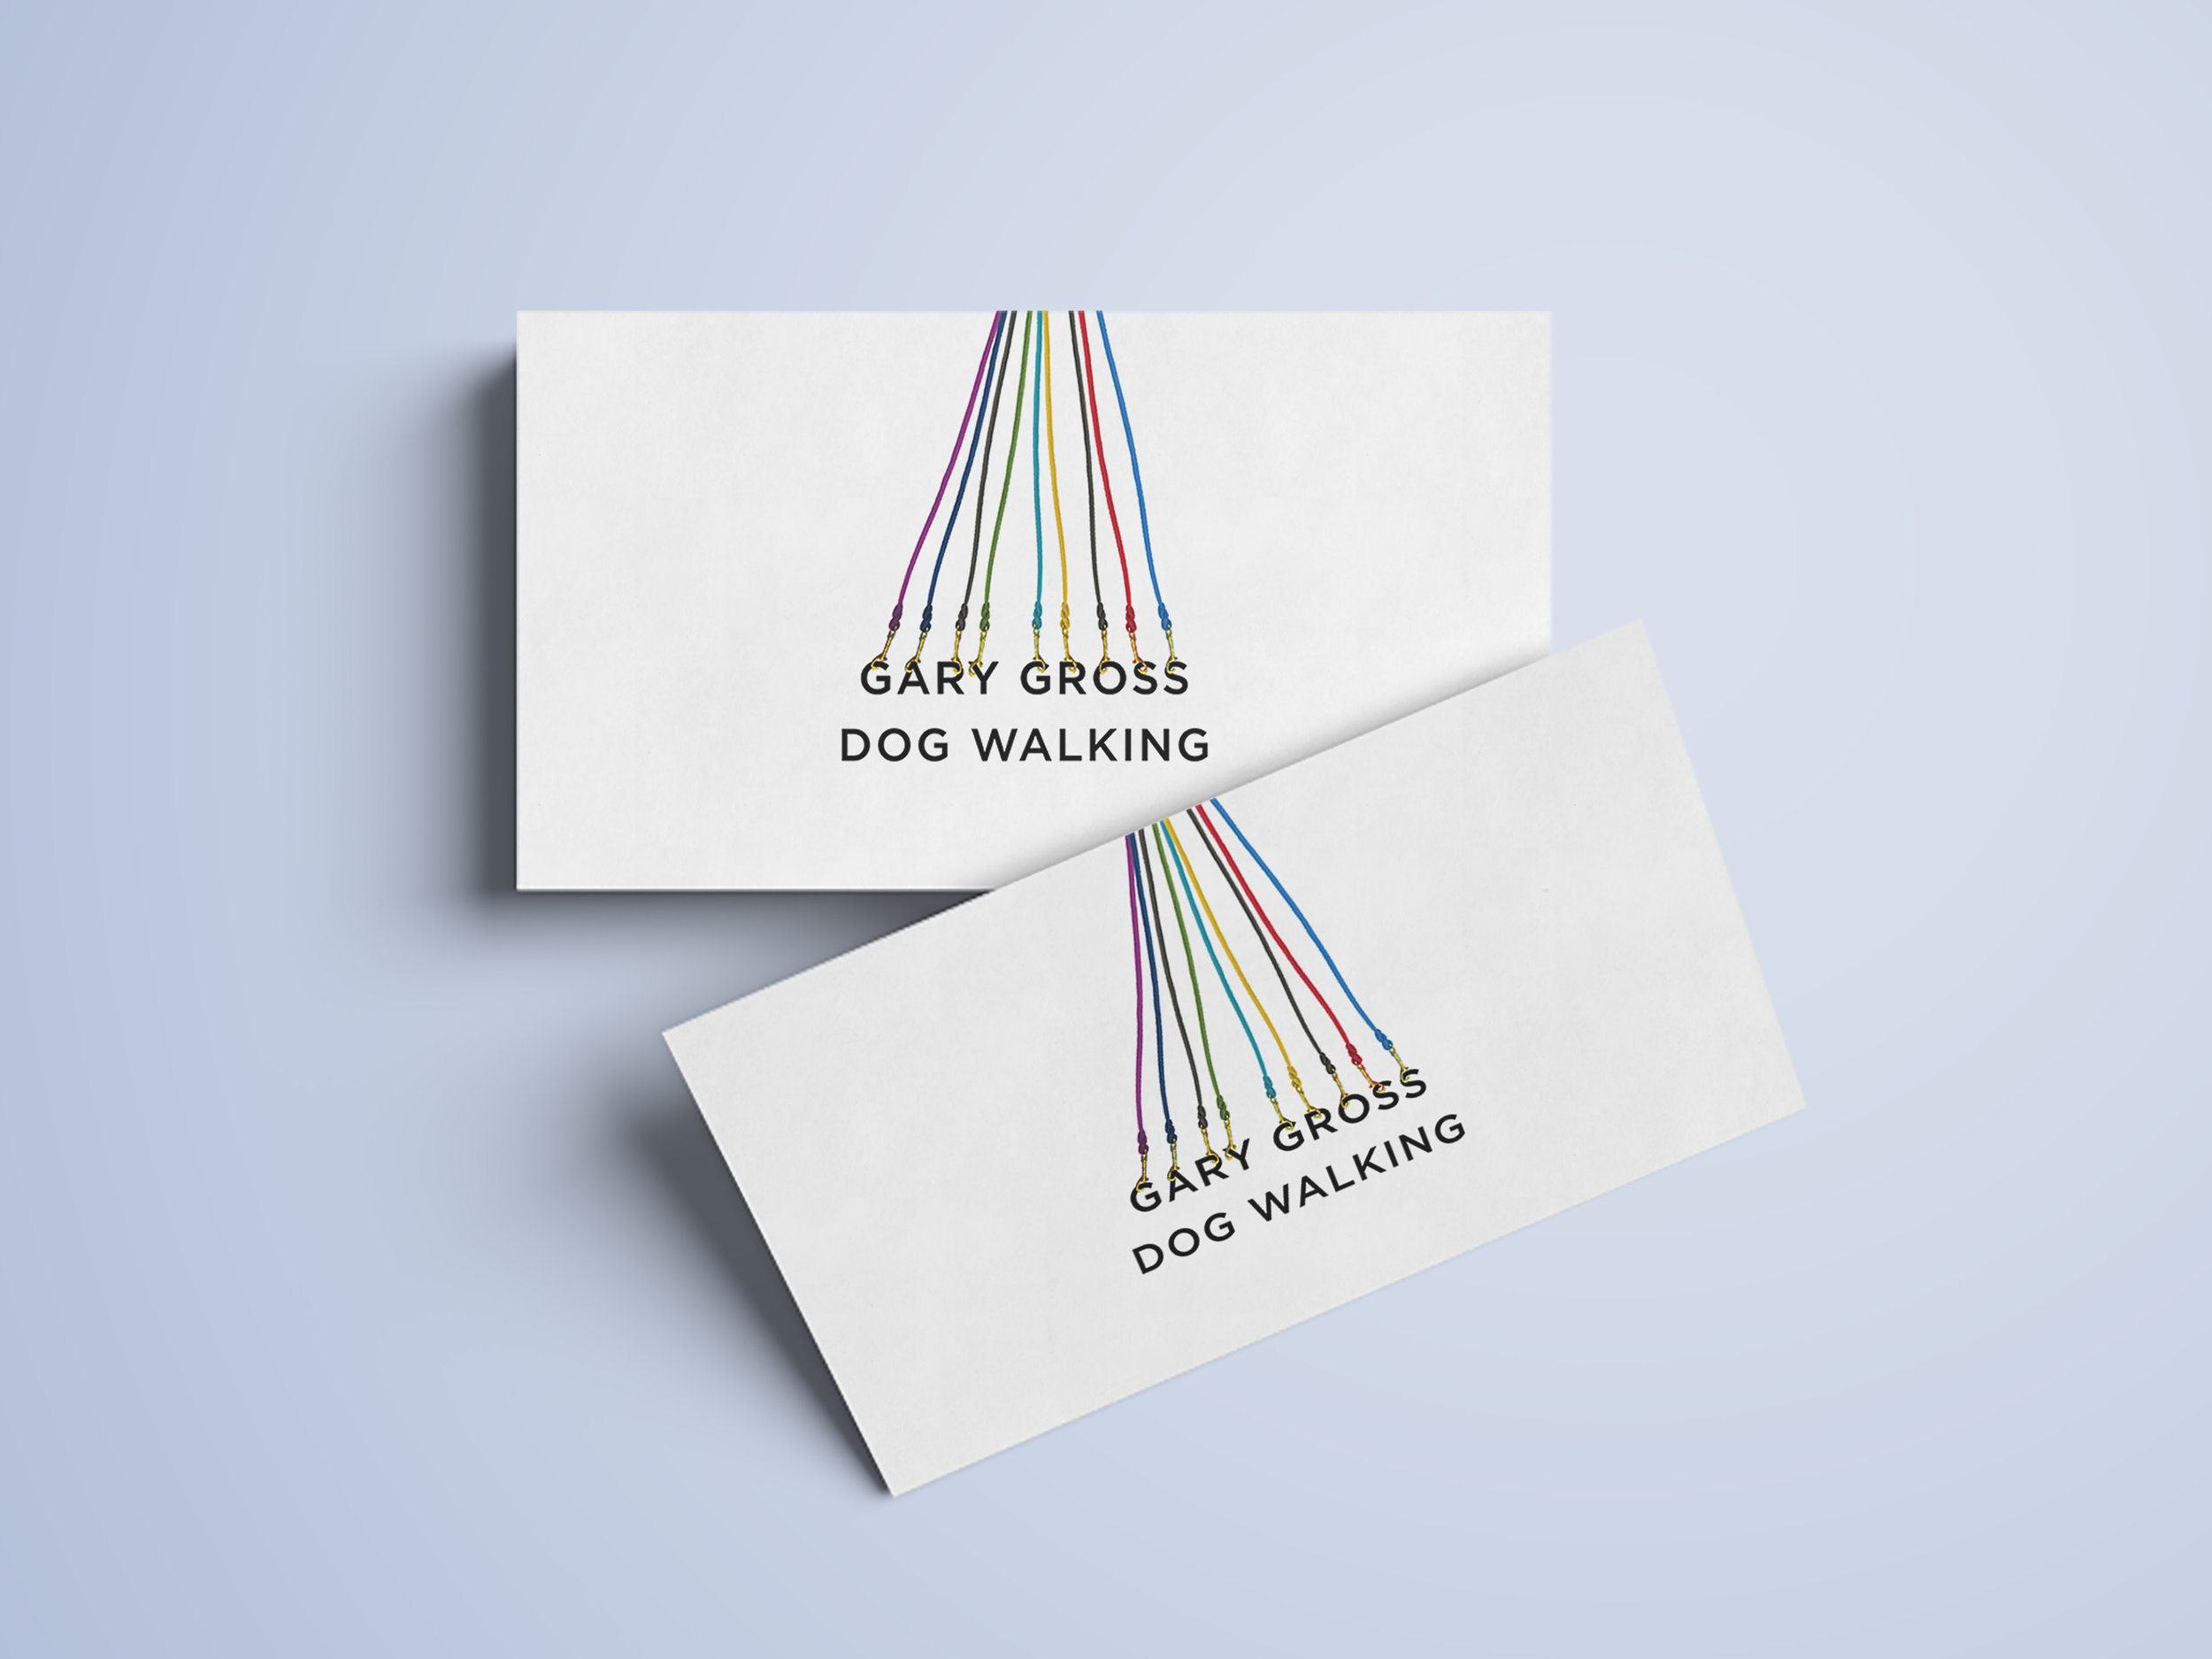 Dog Walking Business Cards | Unlimitedgamers.co